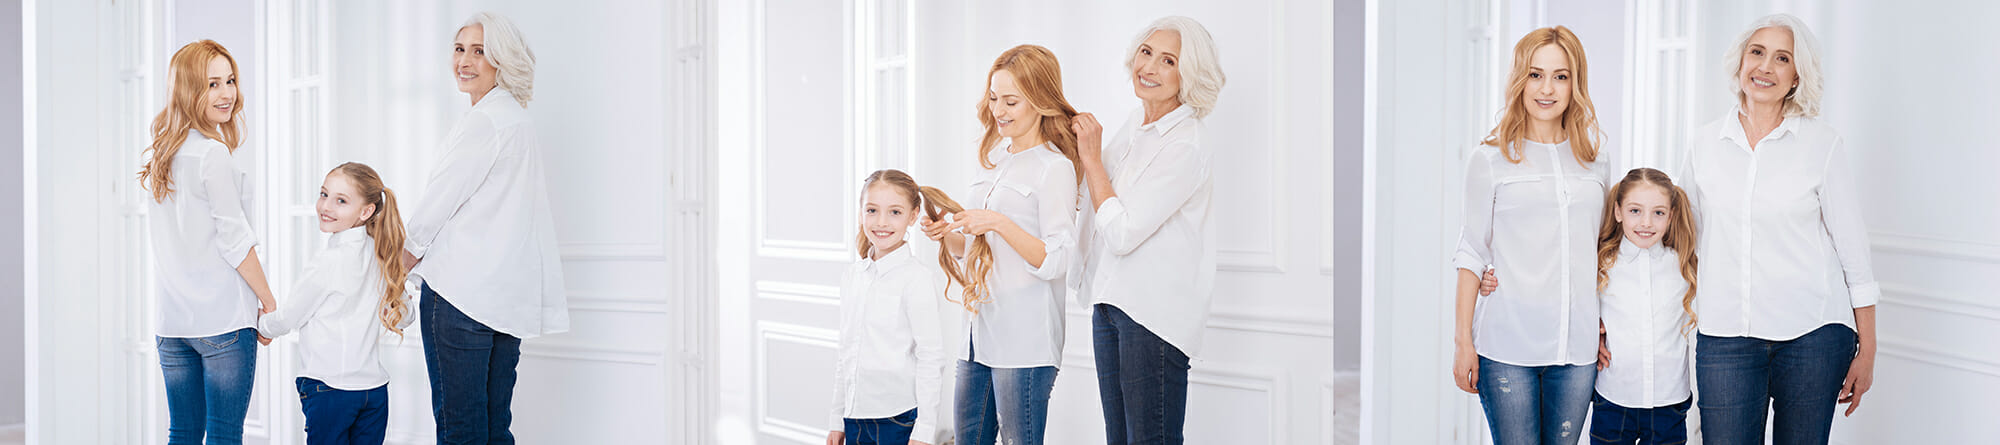 mother child daughter posing fun candid photography grandma white shirts